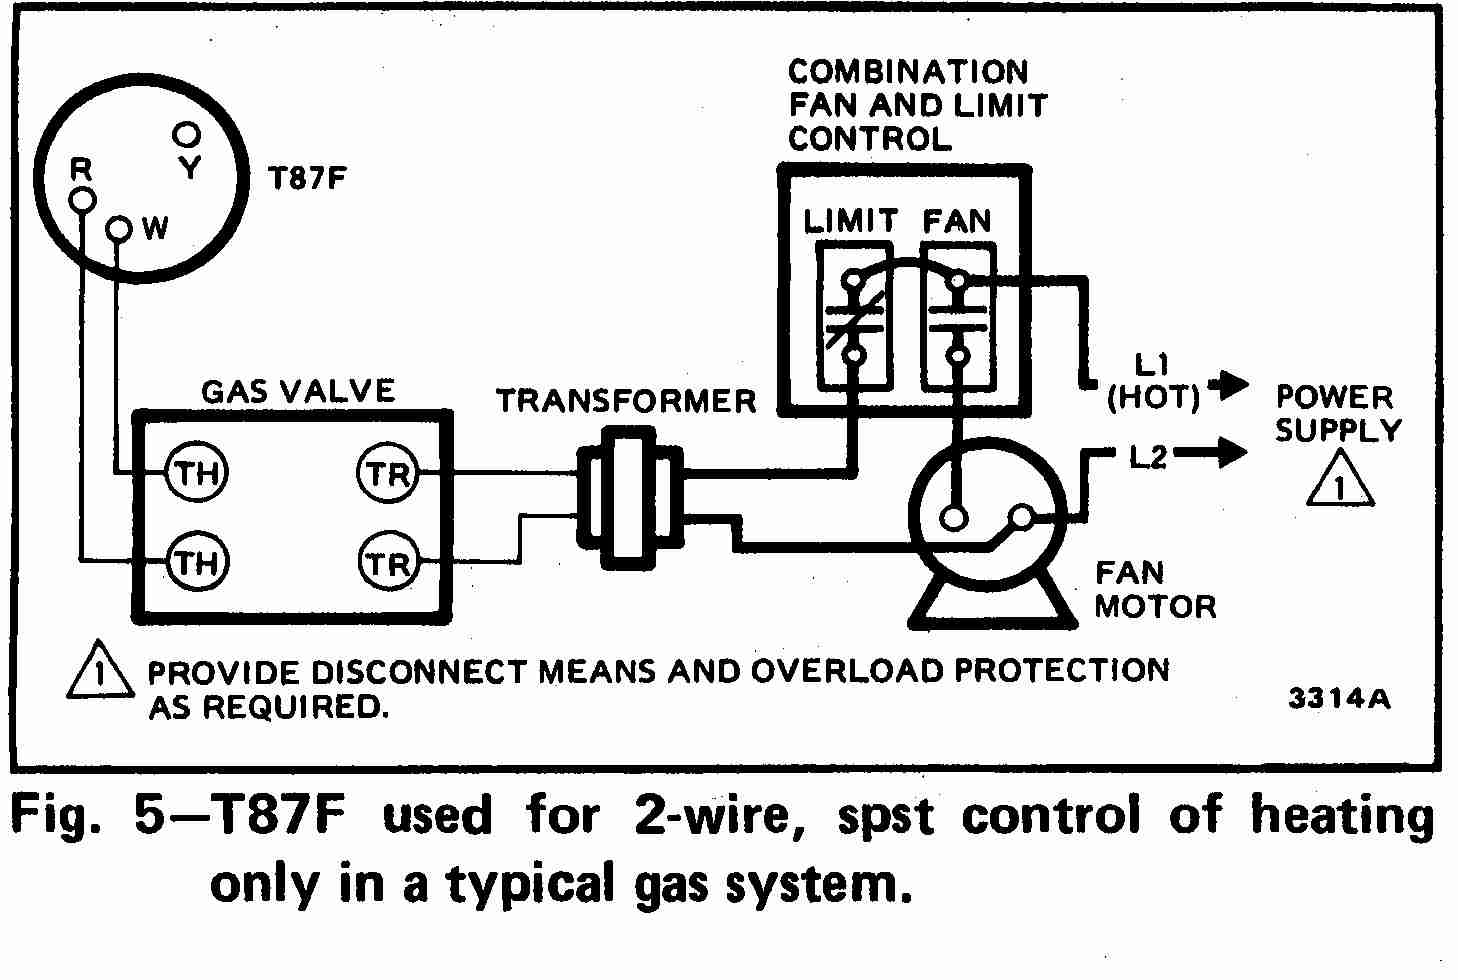 TT_T87F_0002_2Wg_DJF room thermostat wiring diagrams for hvac systems furnace wiring diagrams at soozxer.org